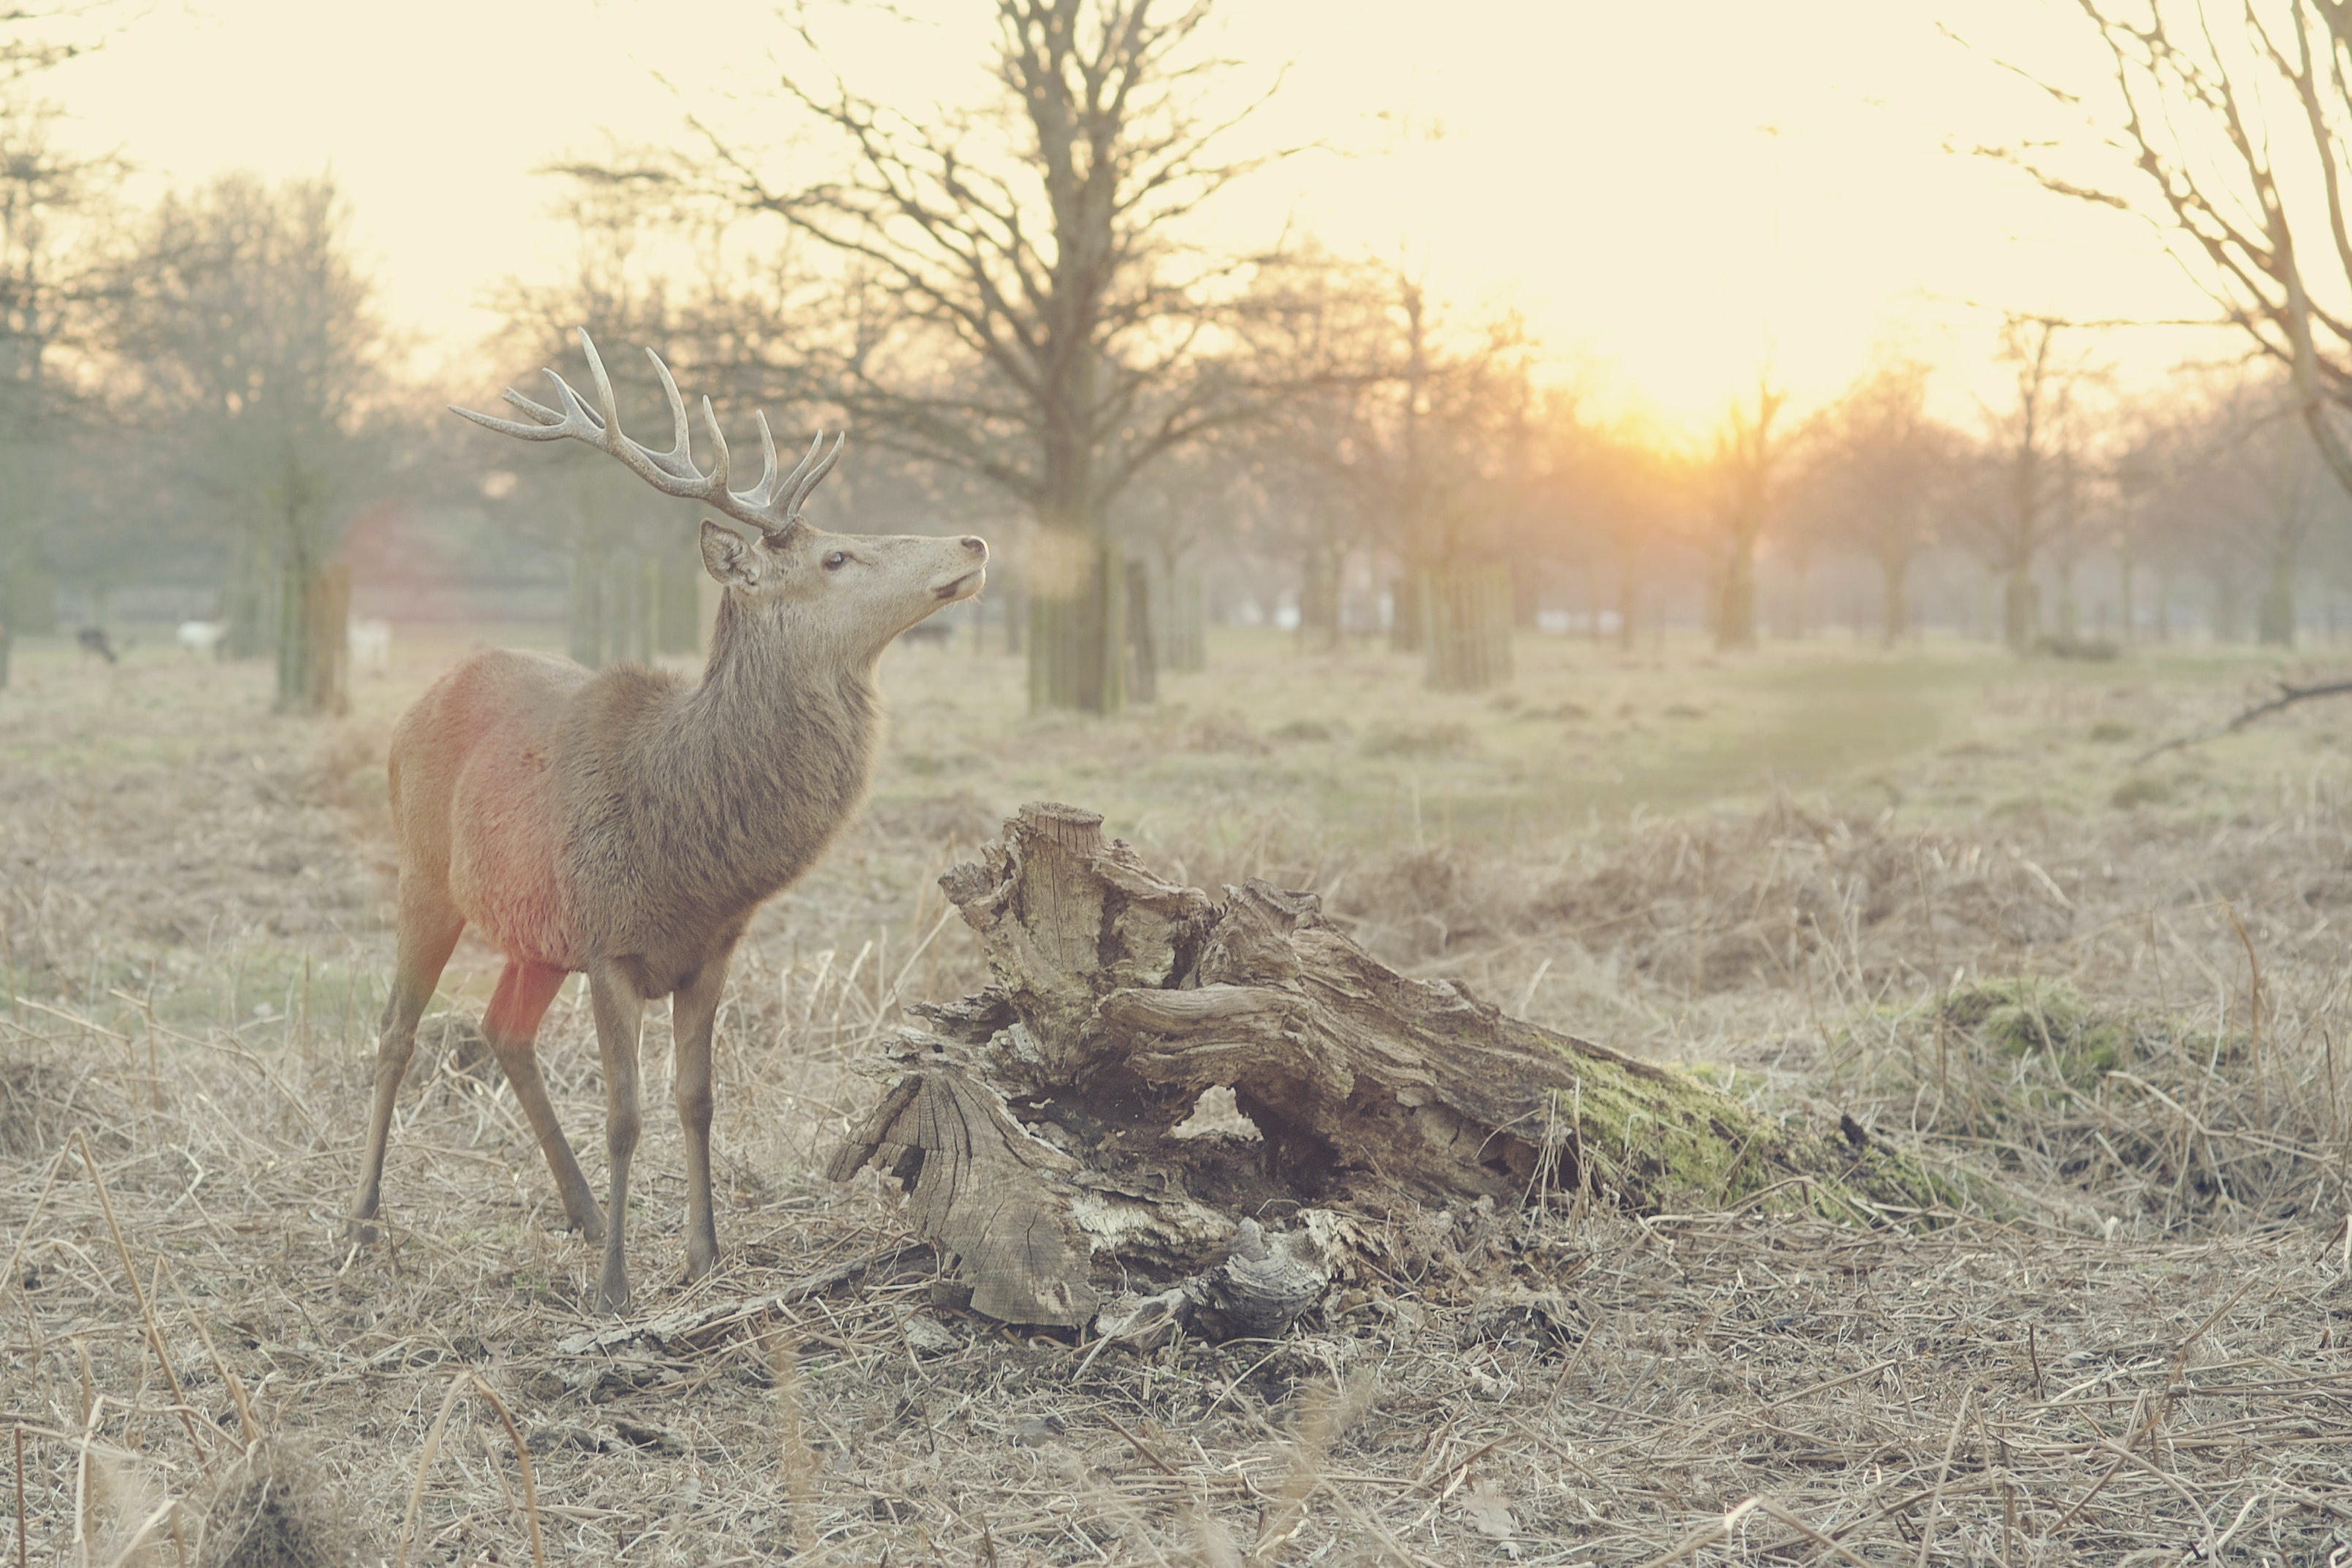 A deer proudly raising its head in the middle of a dry glade at sunset